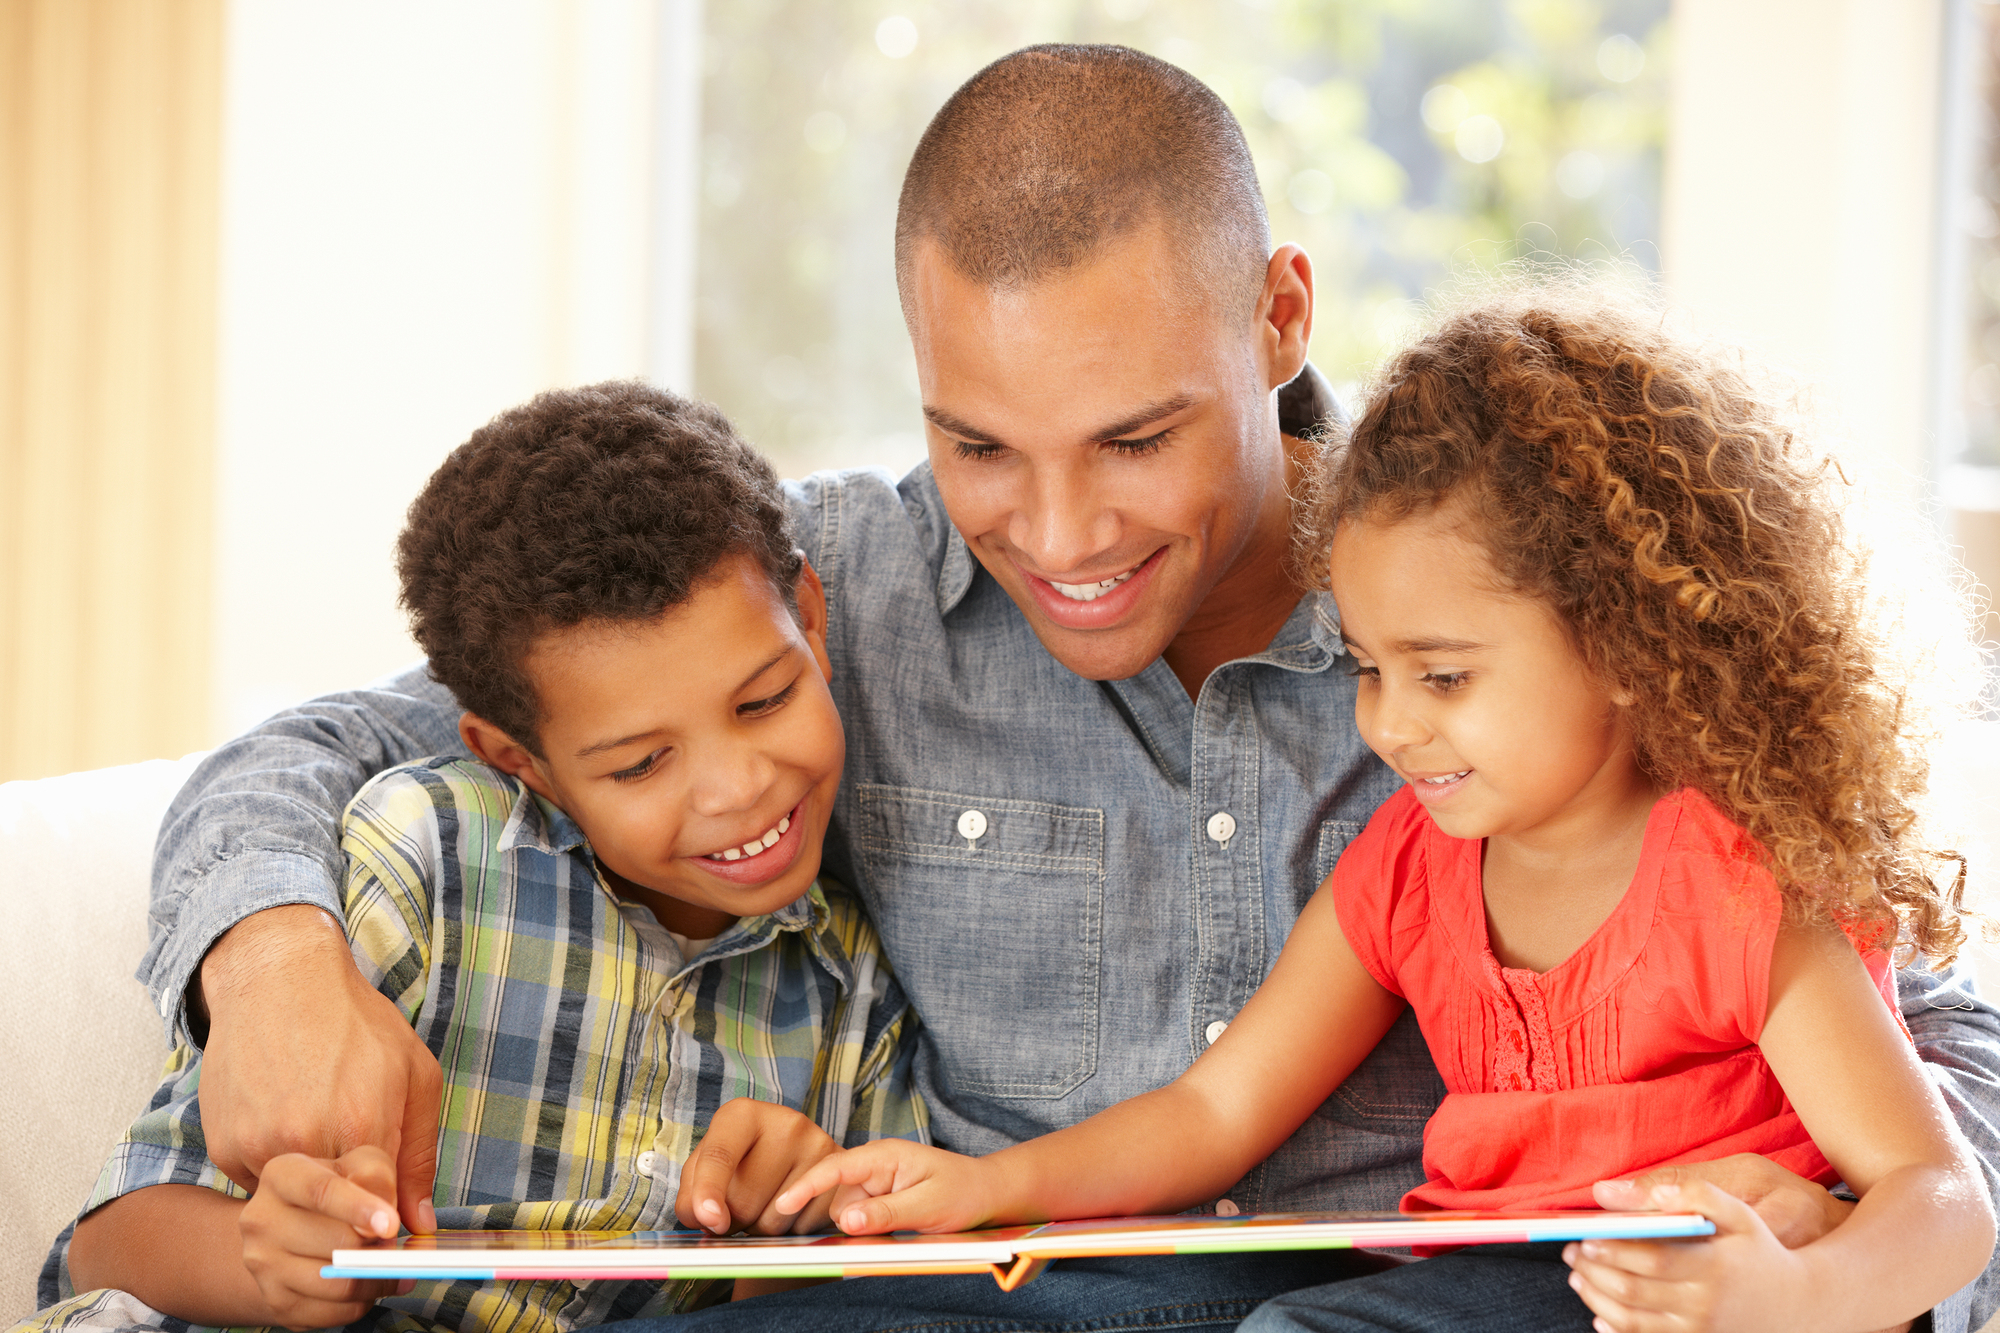 New research reaffirms the effect that a child's early environment has on learning success.